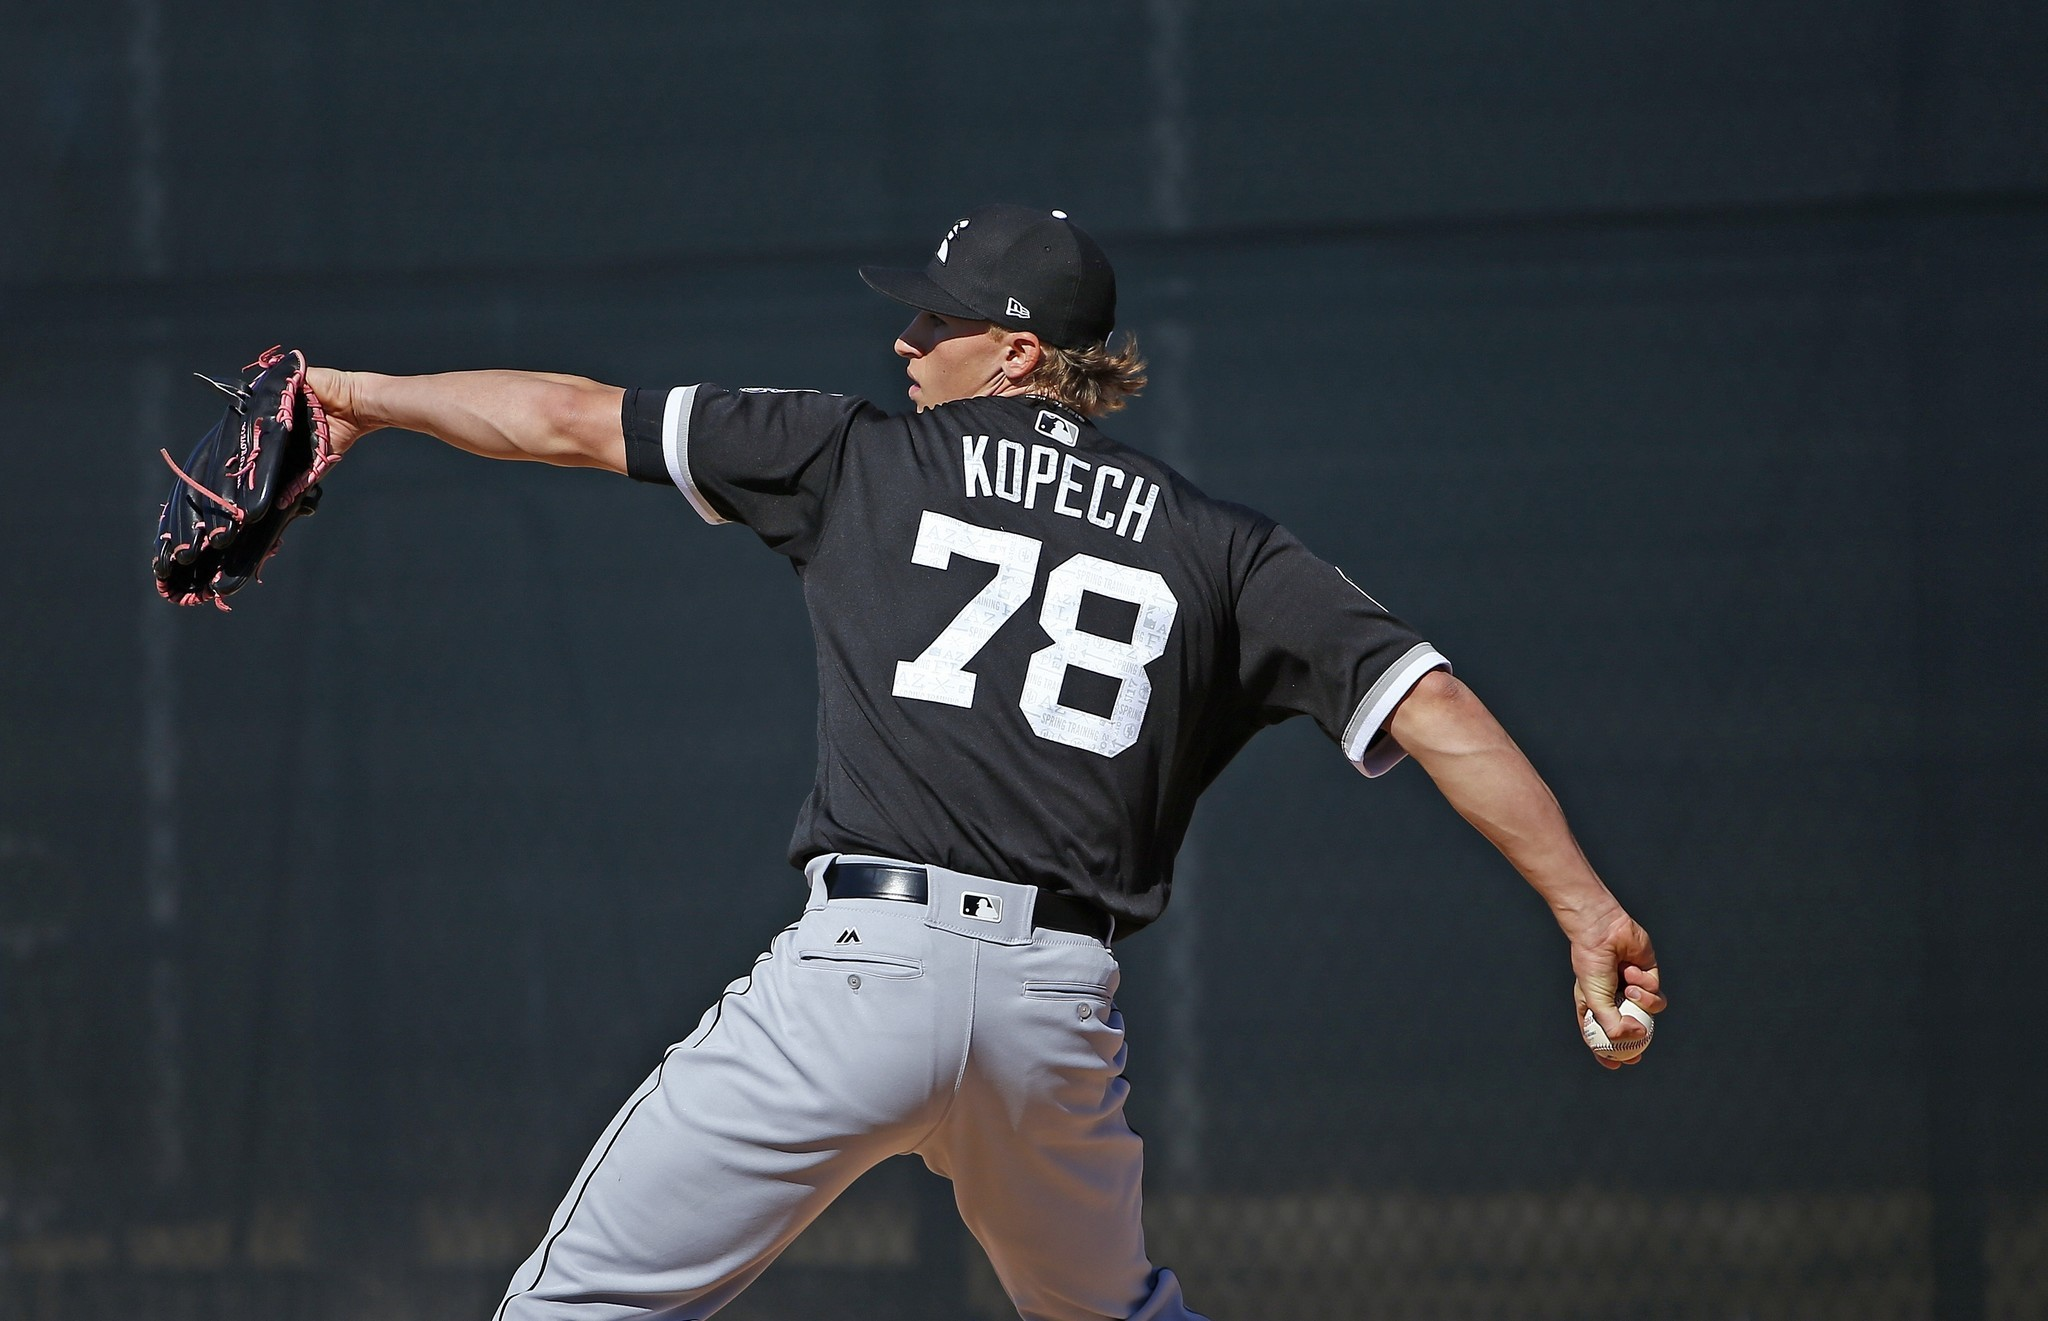 Ct-michael-kopech-white-sox-minors-spt-0502-20170501